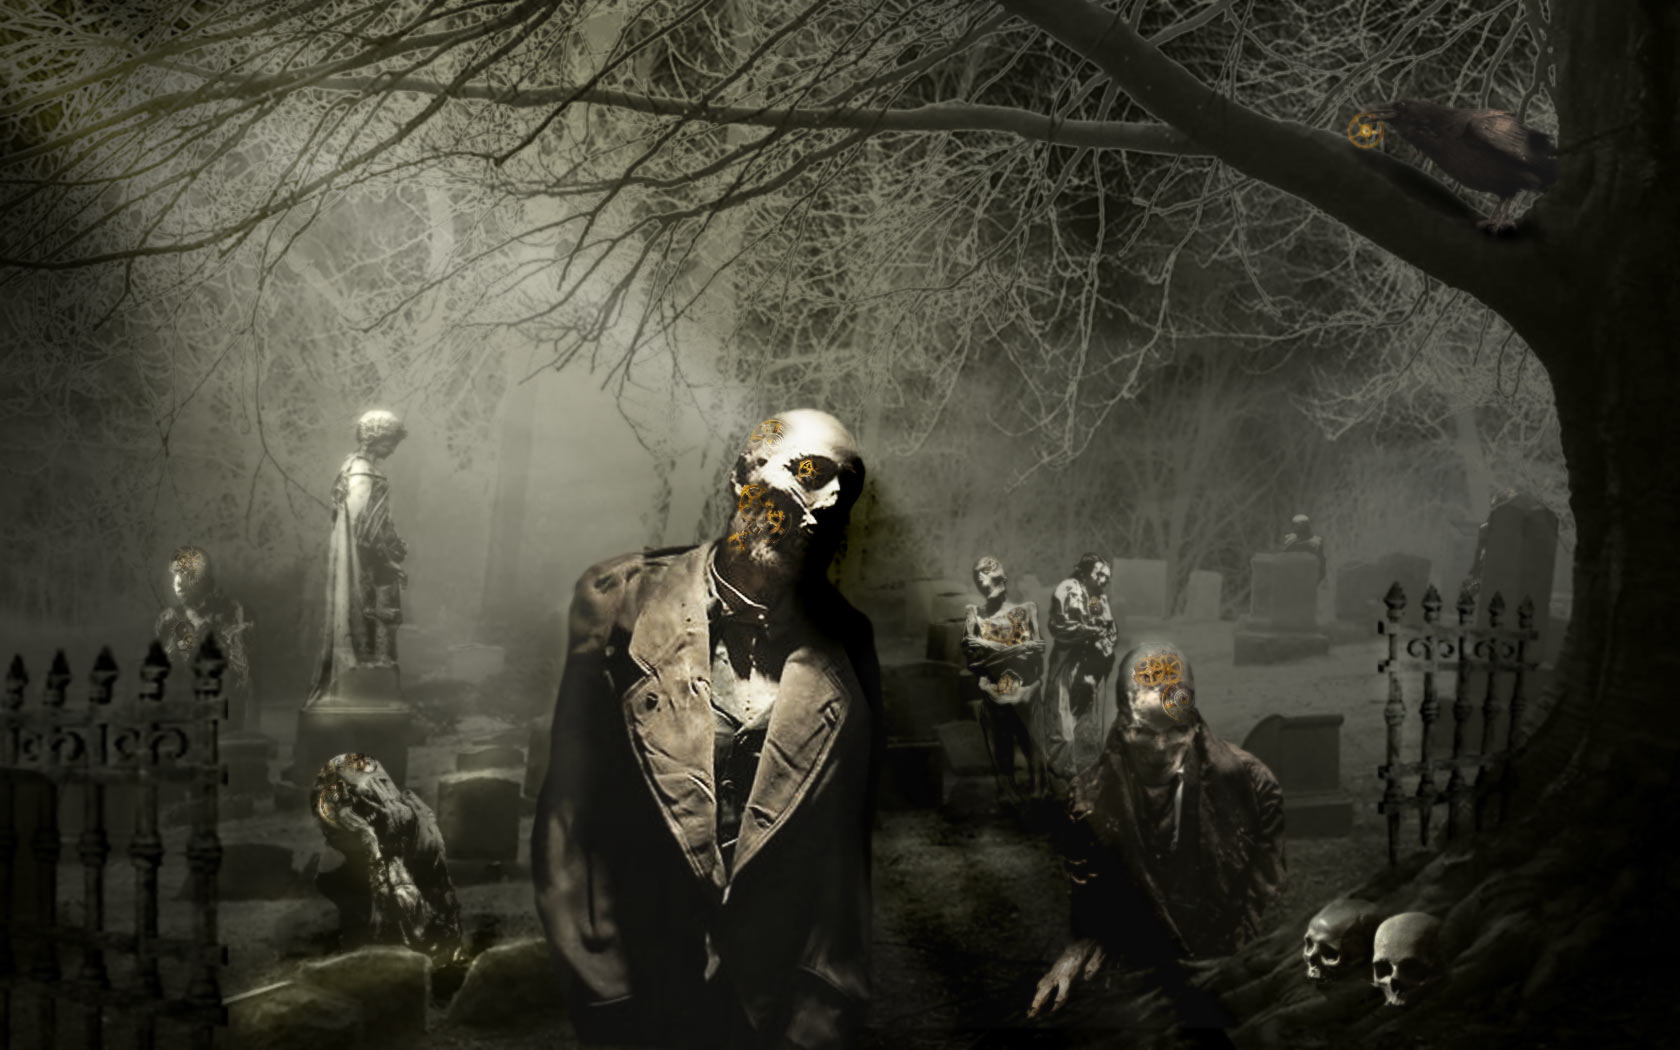 zombie-hd-wallpapers-6.jpeg